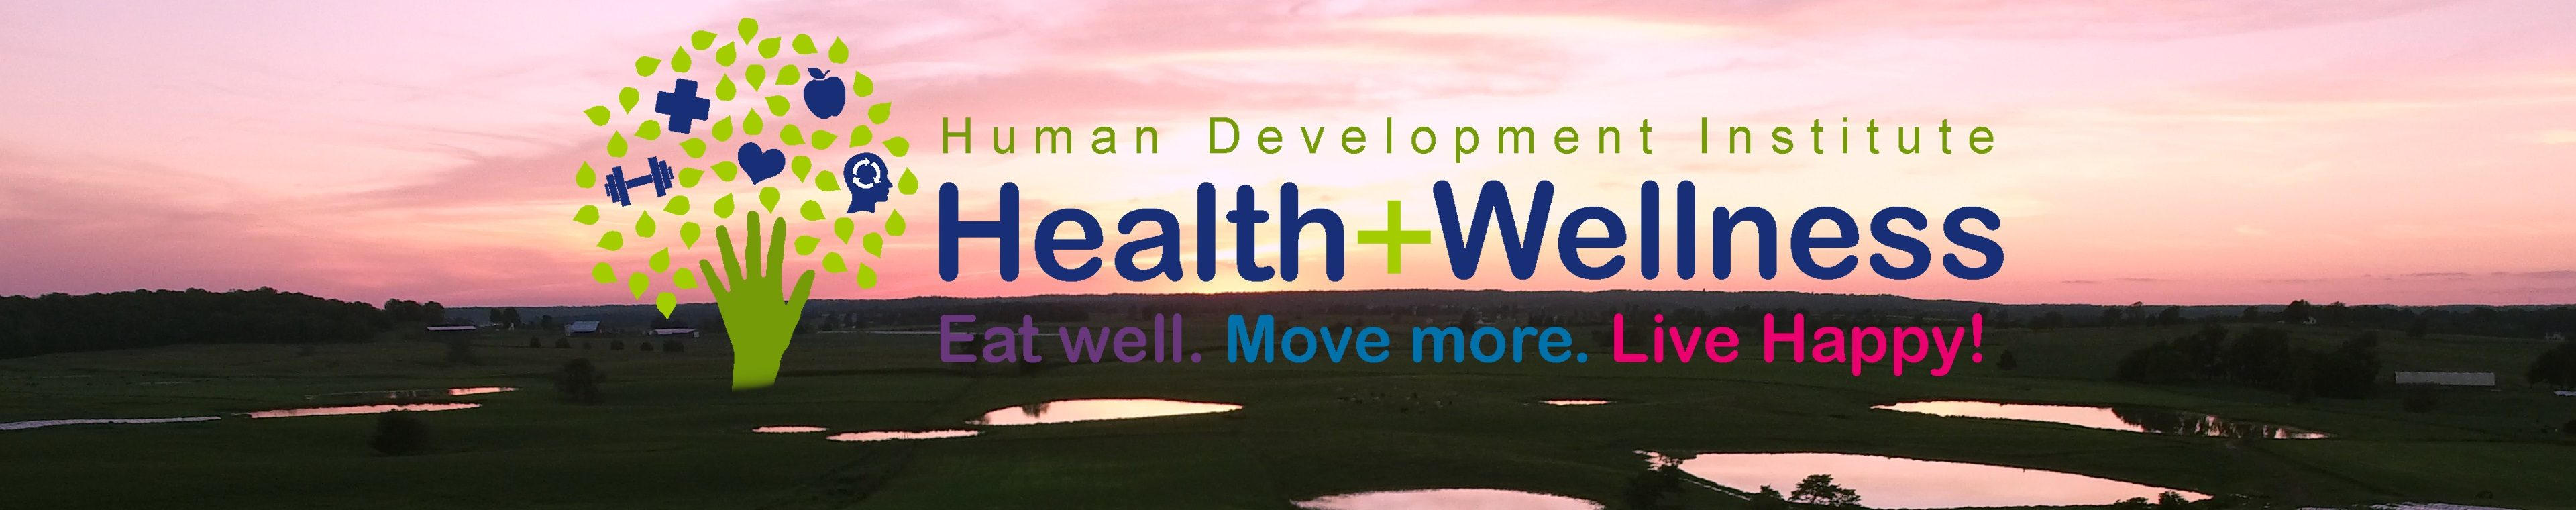 Health and Wellness header image with logo and sunset